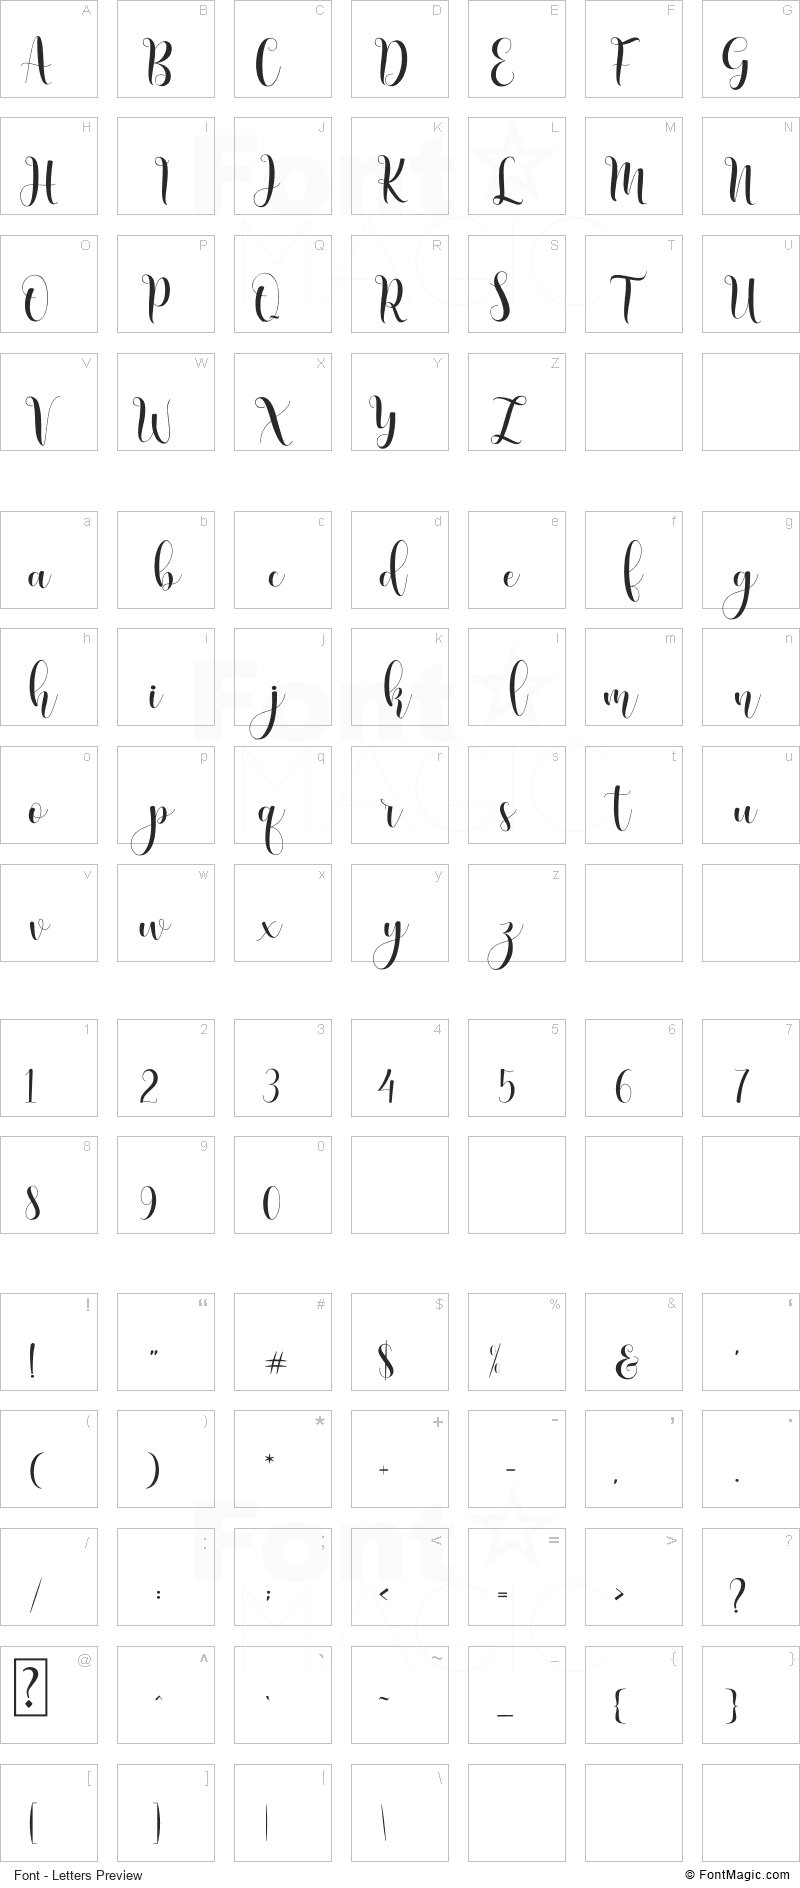 Honney Font - All Latters Preview Chart